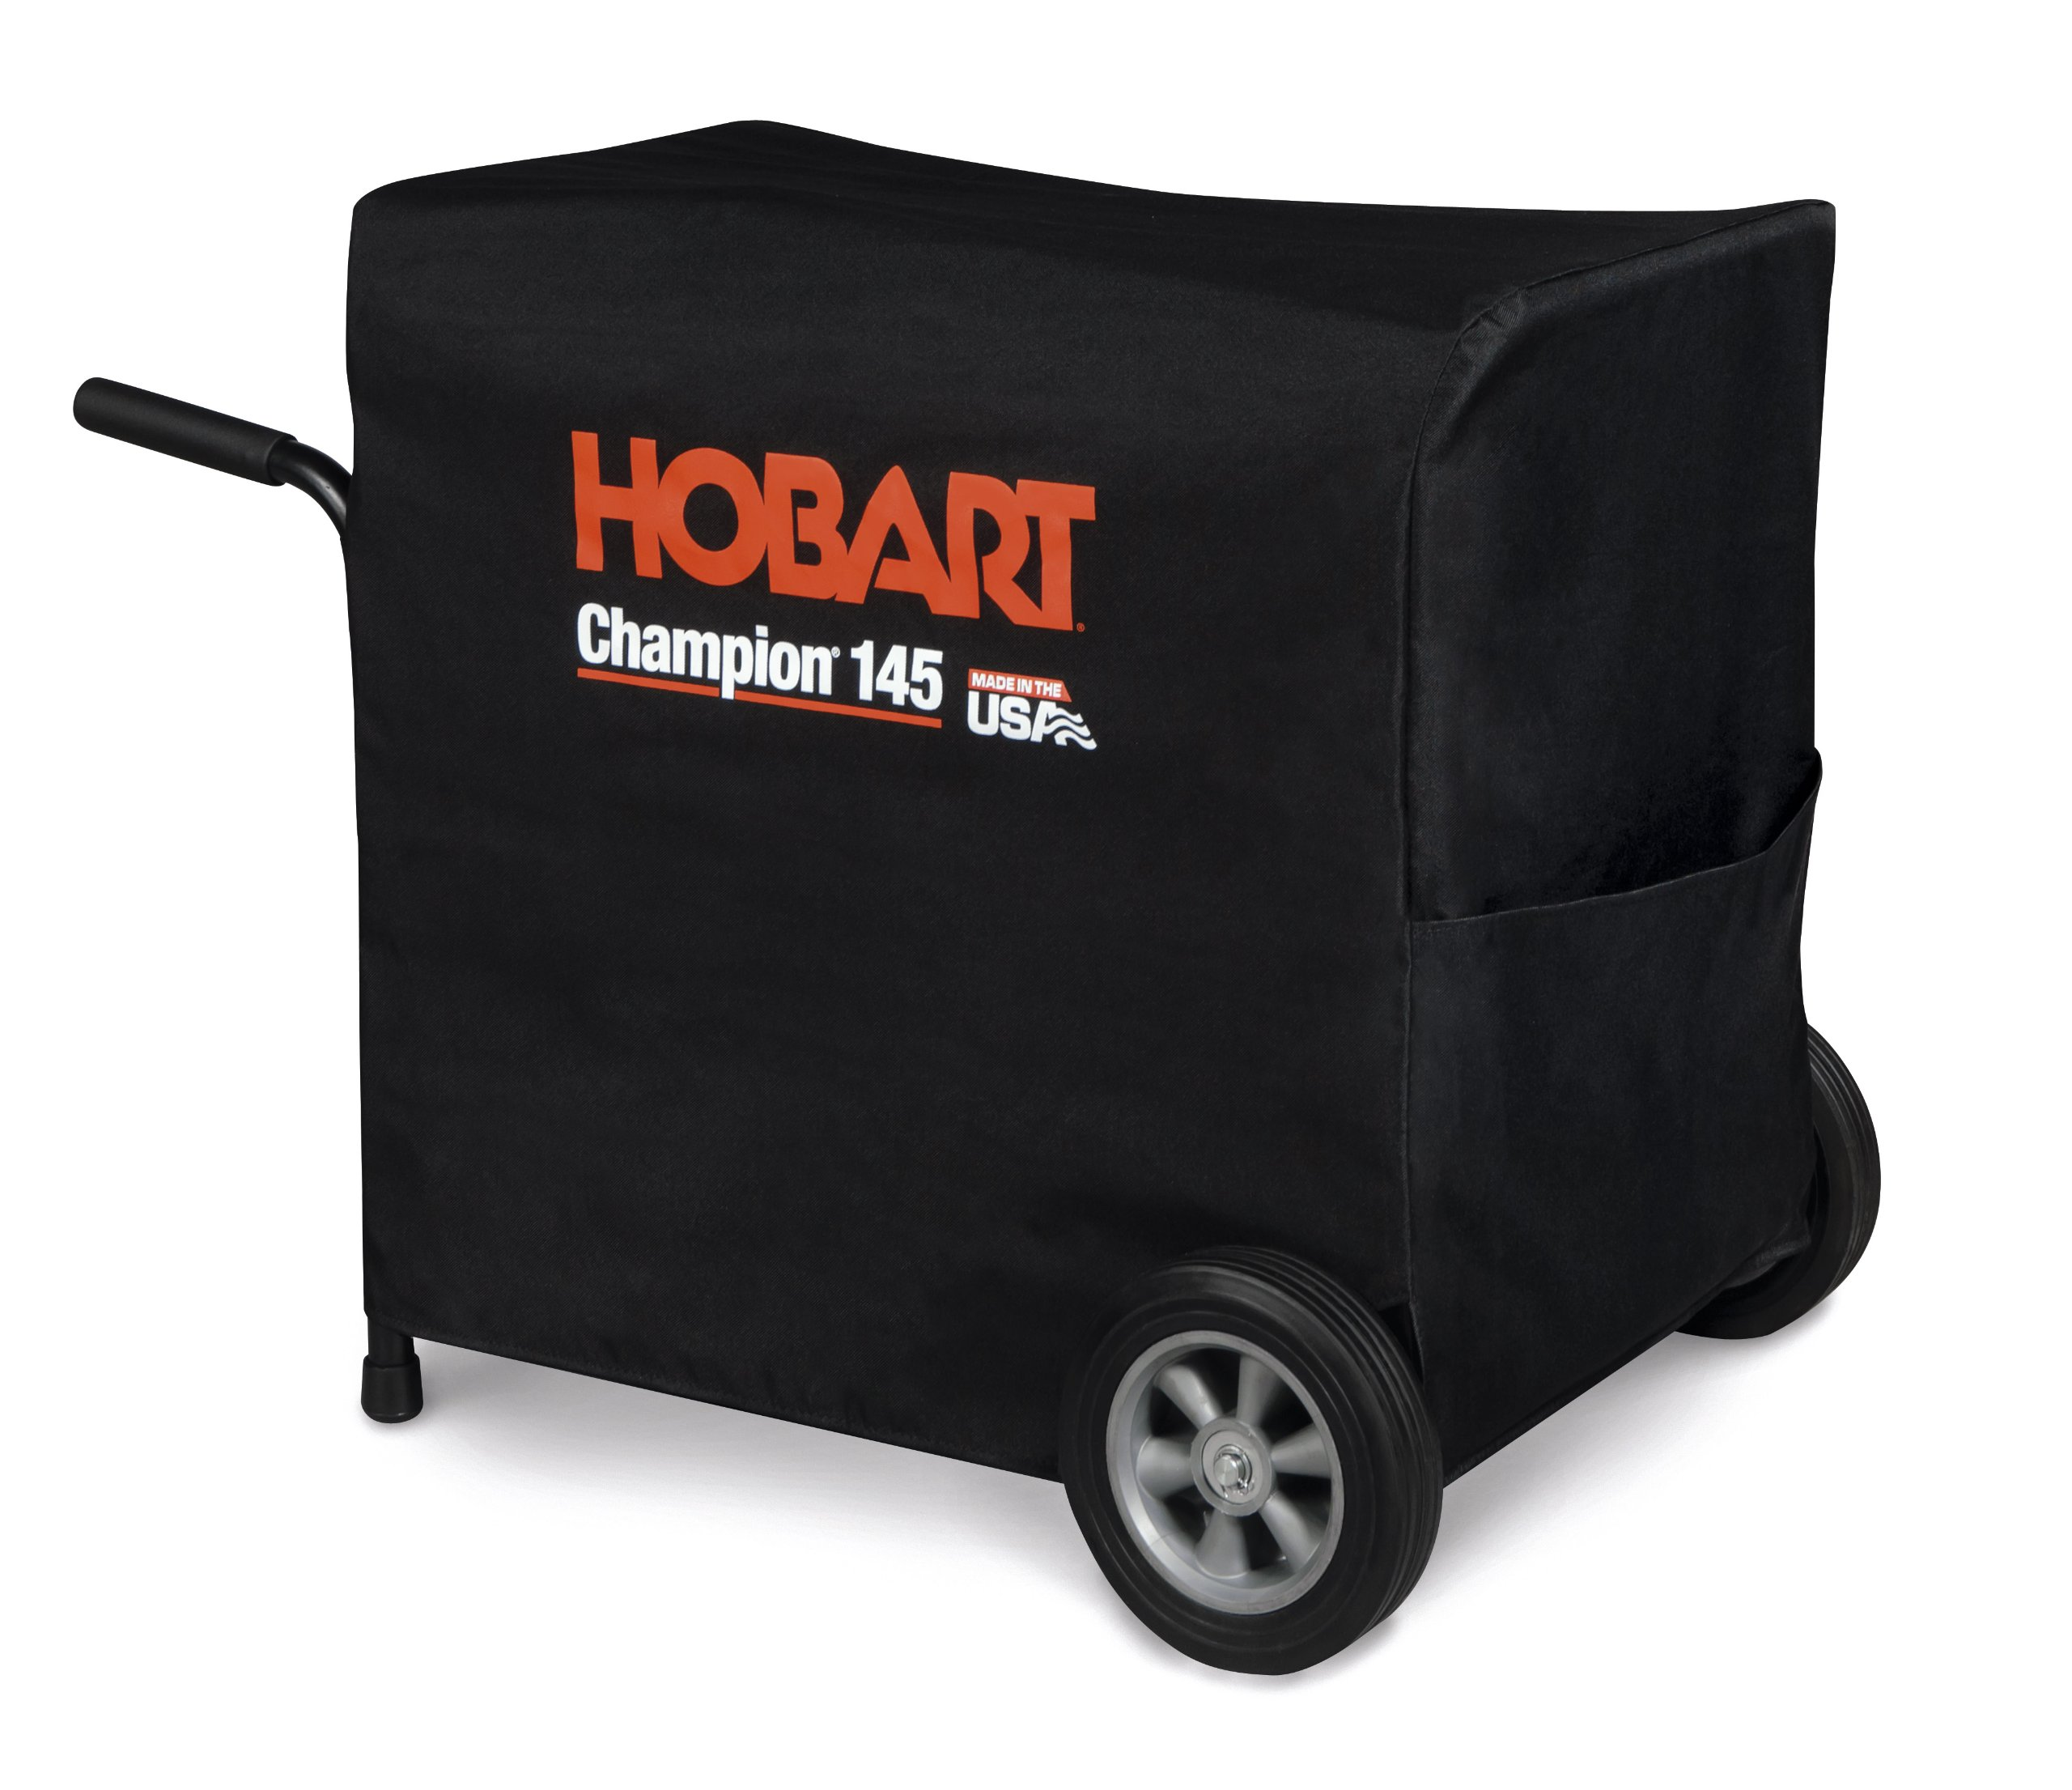 Hobart 770714 Protective Cover for Champion 145 by Hobart